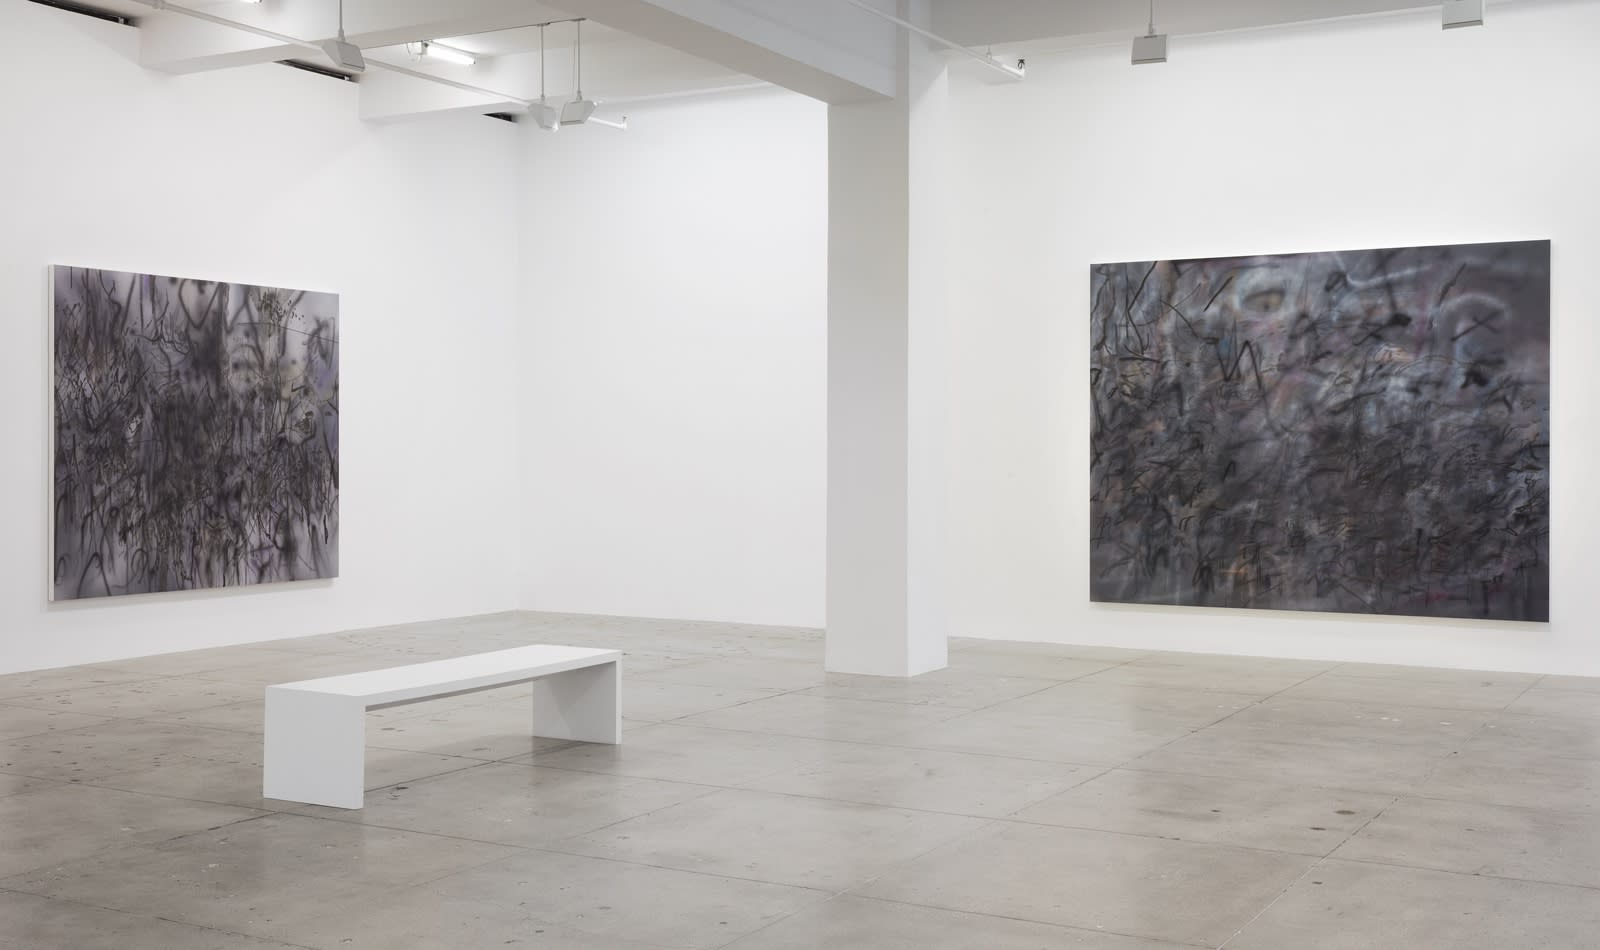 2 abstract paintings hang in a white gallery space with a white bench.